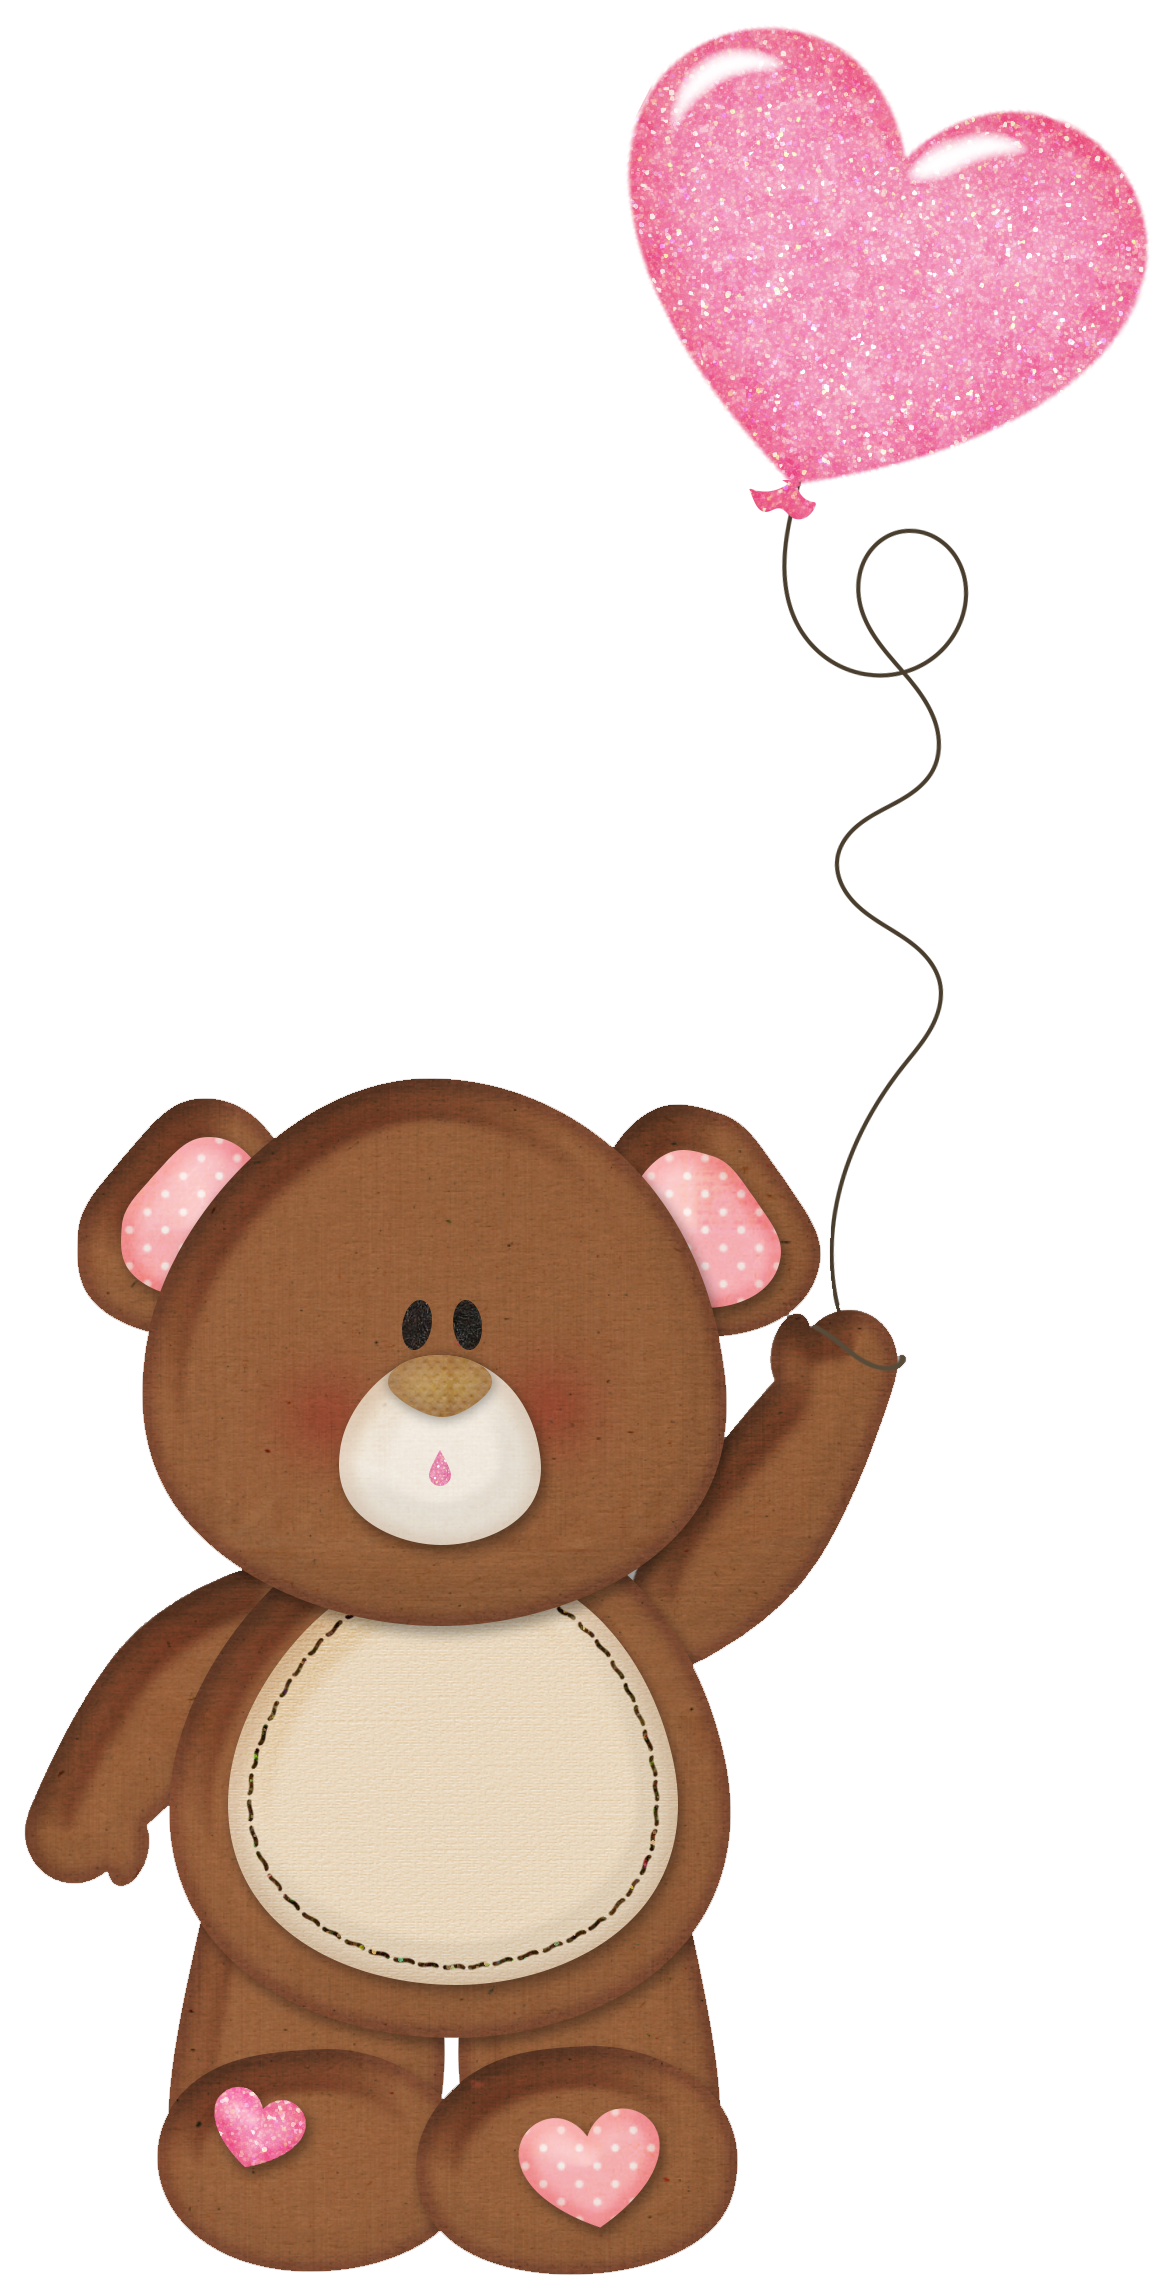 Cute pink teddy bear clipart